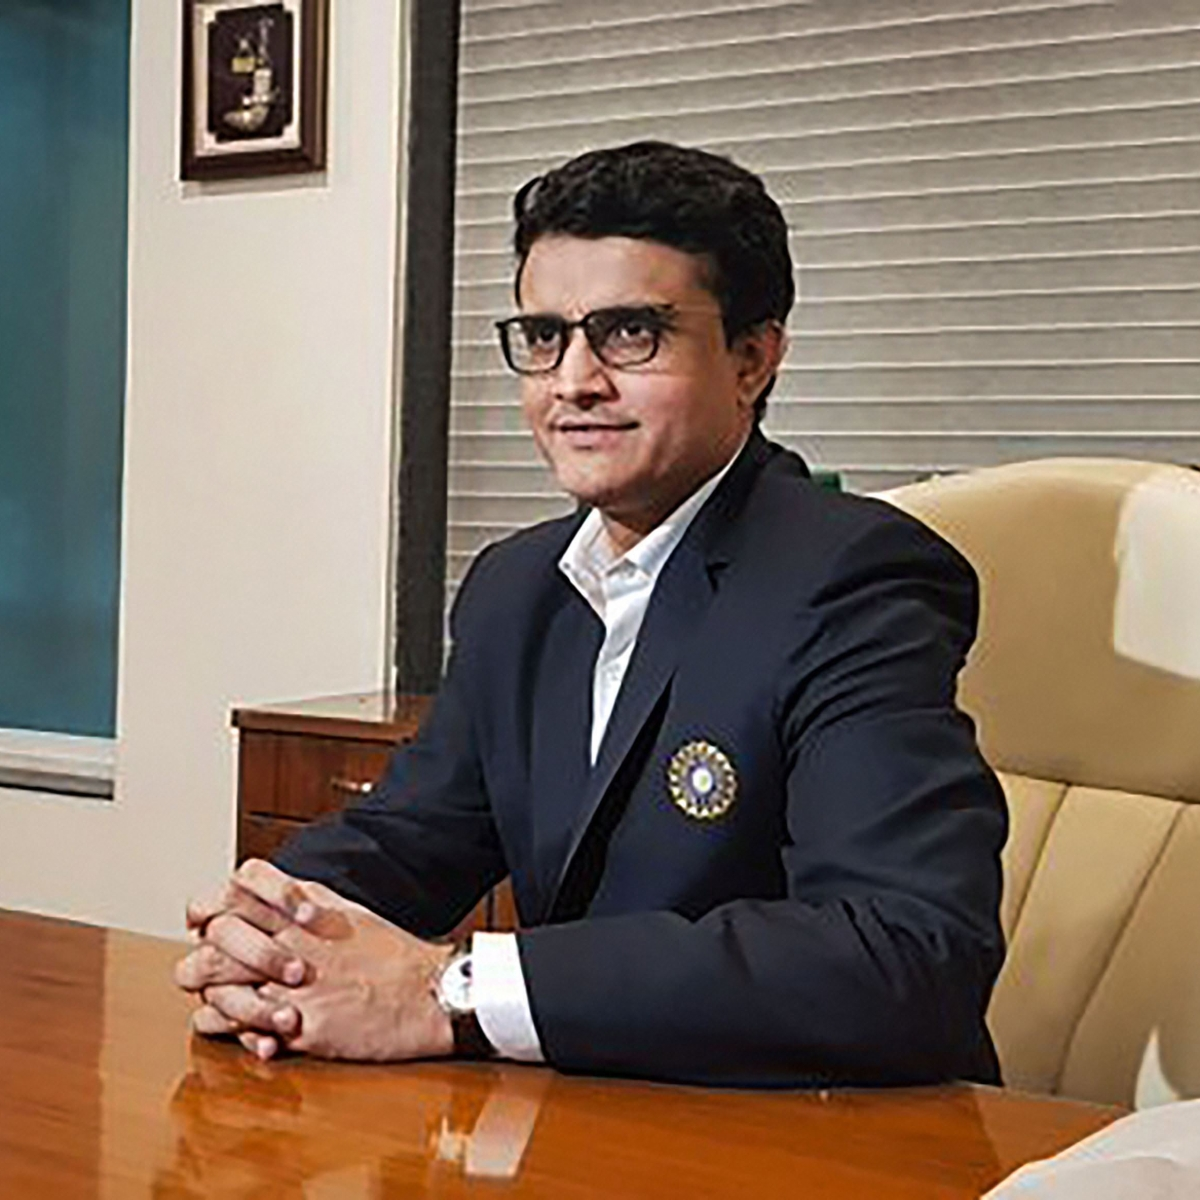 Dada's reign to continue for 3 years? Sourav Ganguly's time as BCCI president might increase after AGM proposes constitutional amendments